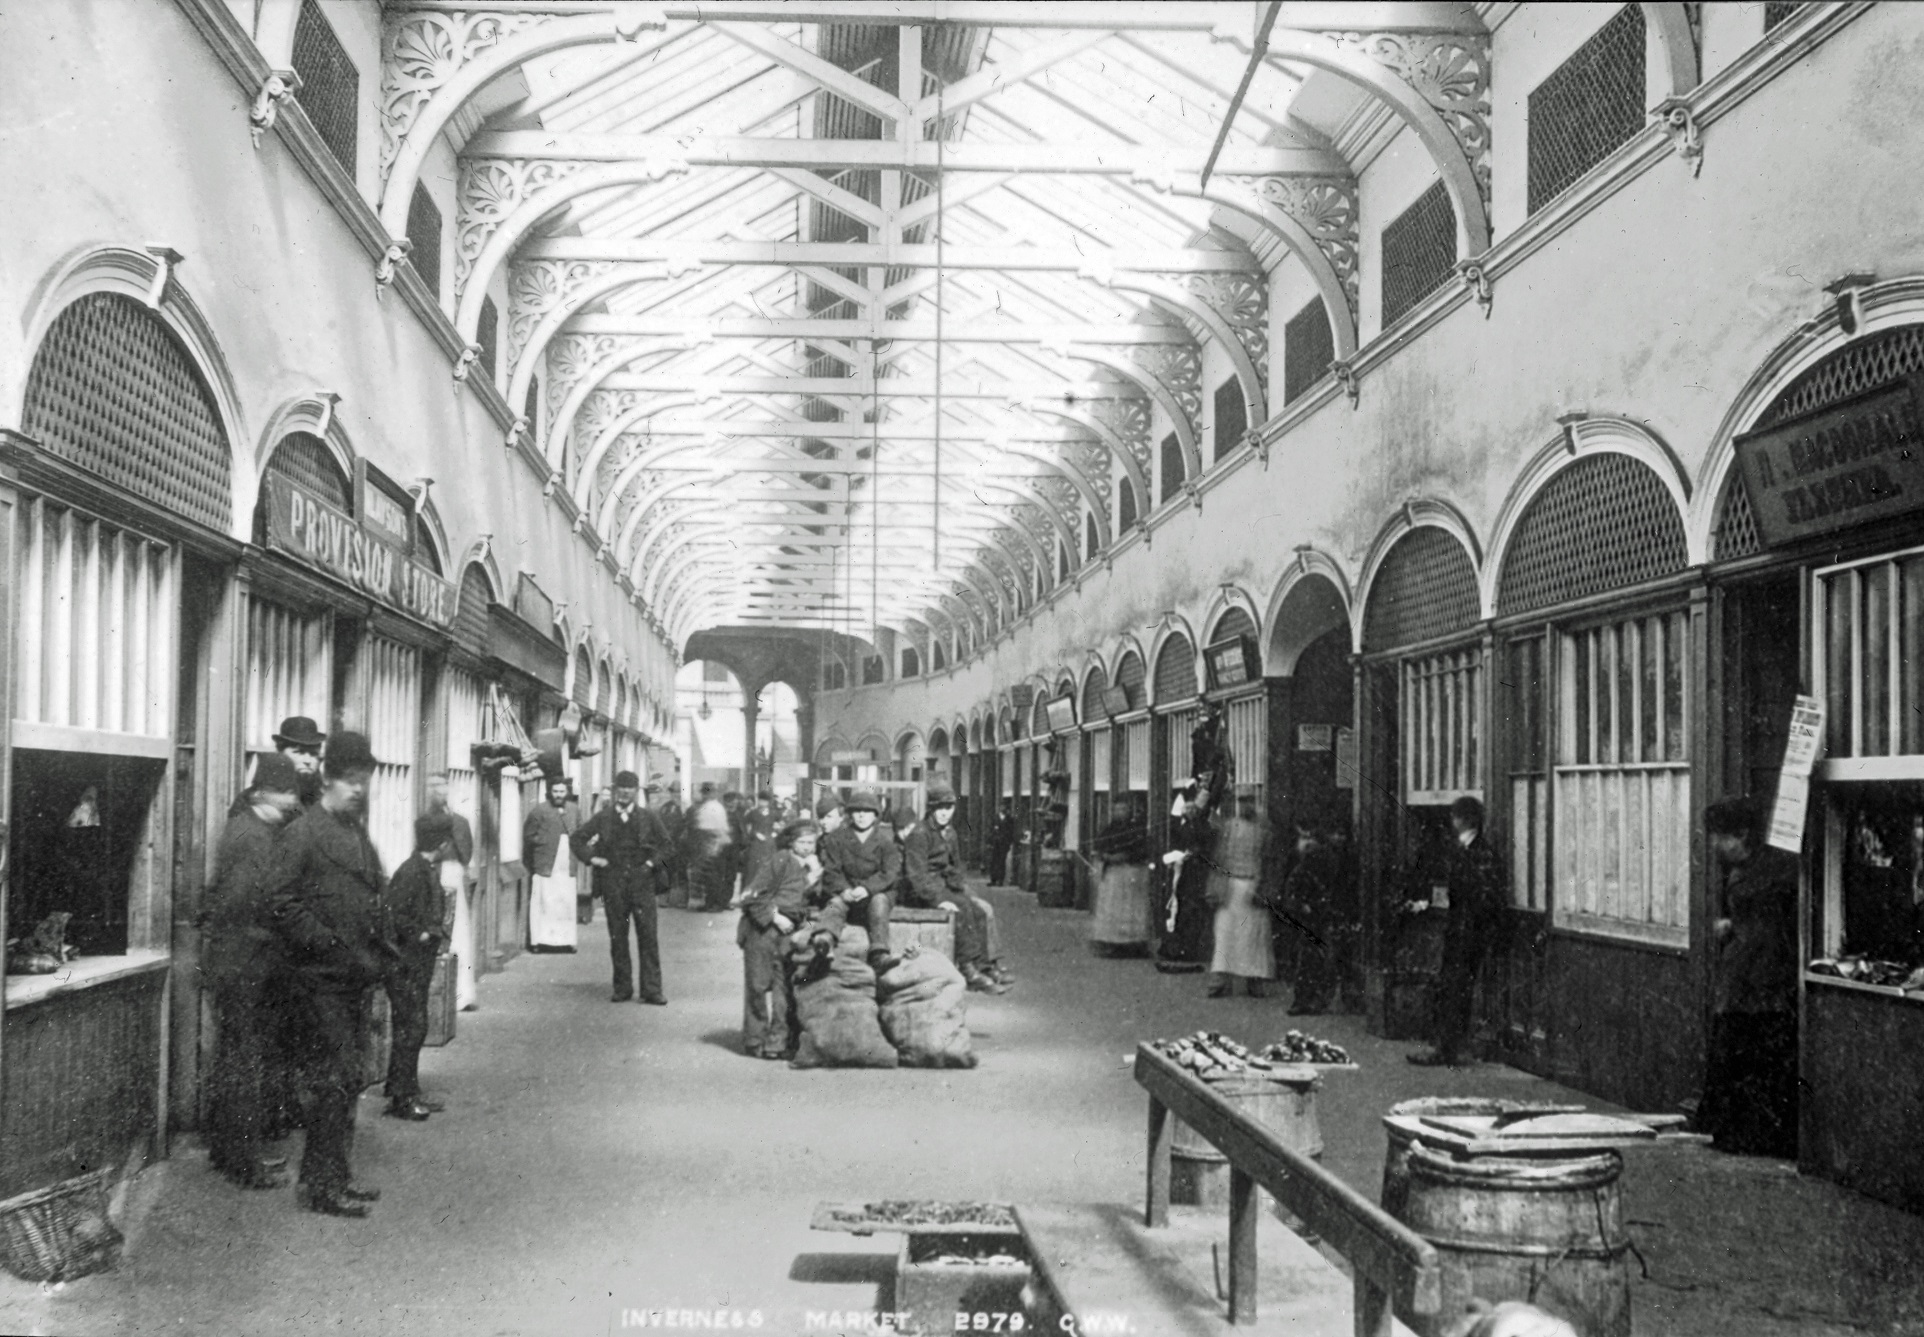 Victorian Market Inverness Copyright Joseph Cook Collection, Inverness Museum & Art Gallery